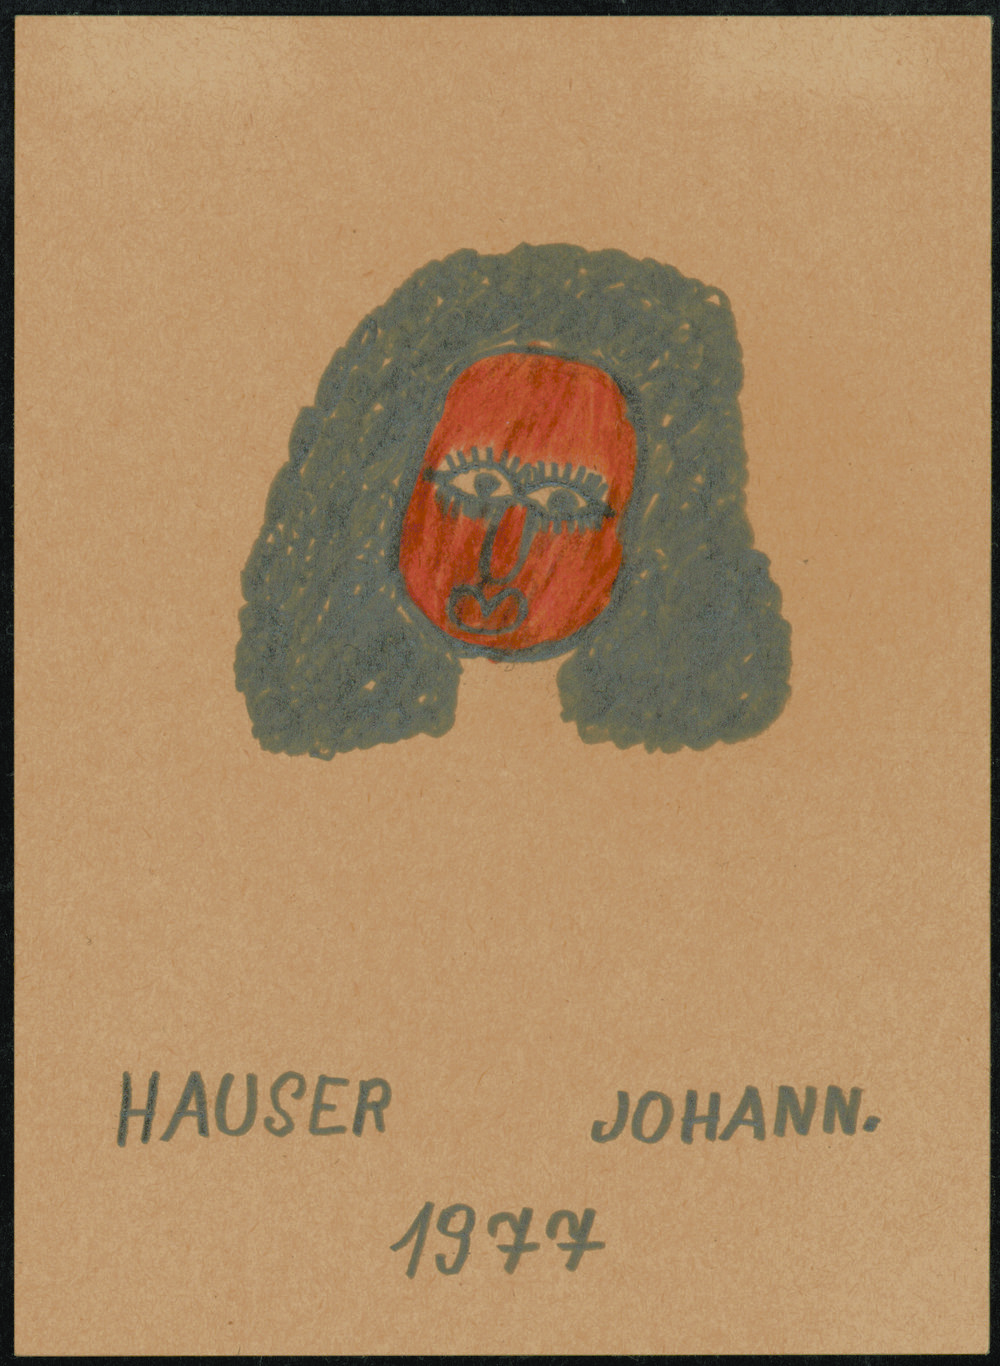 Johann Hauser (Austrian, 1926-1996).  Head of Woman with Red Face , 1977. Pencil and crayon on paper, 5 ¾ x 4 1/8 in. Intuit: The Center for Intuitive and Outsider Art, gift of John M. MacGregor in honor of Robert A. Roth, 2004.7.2